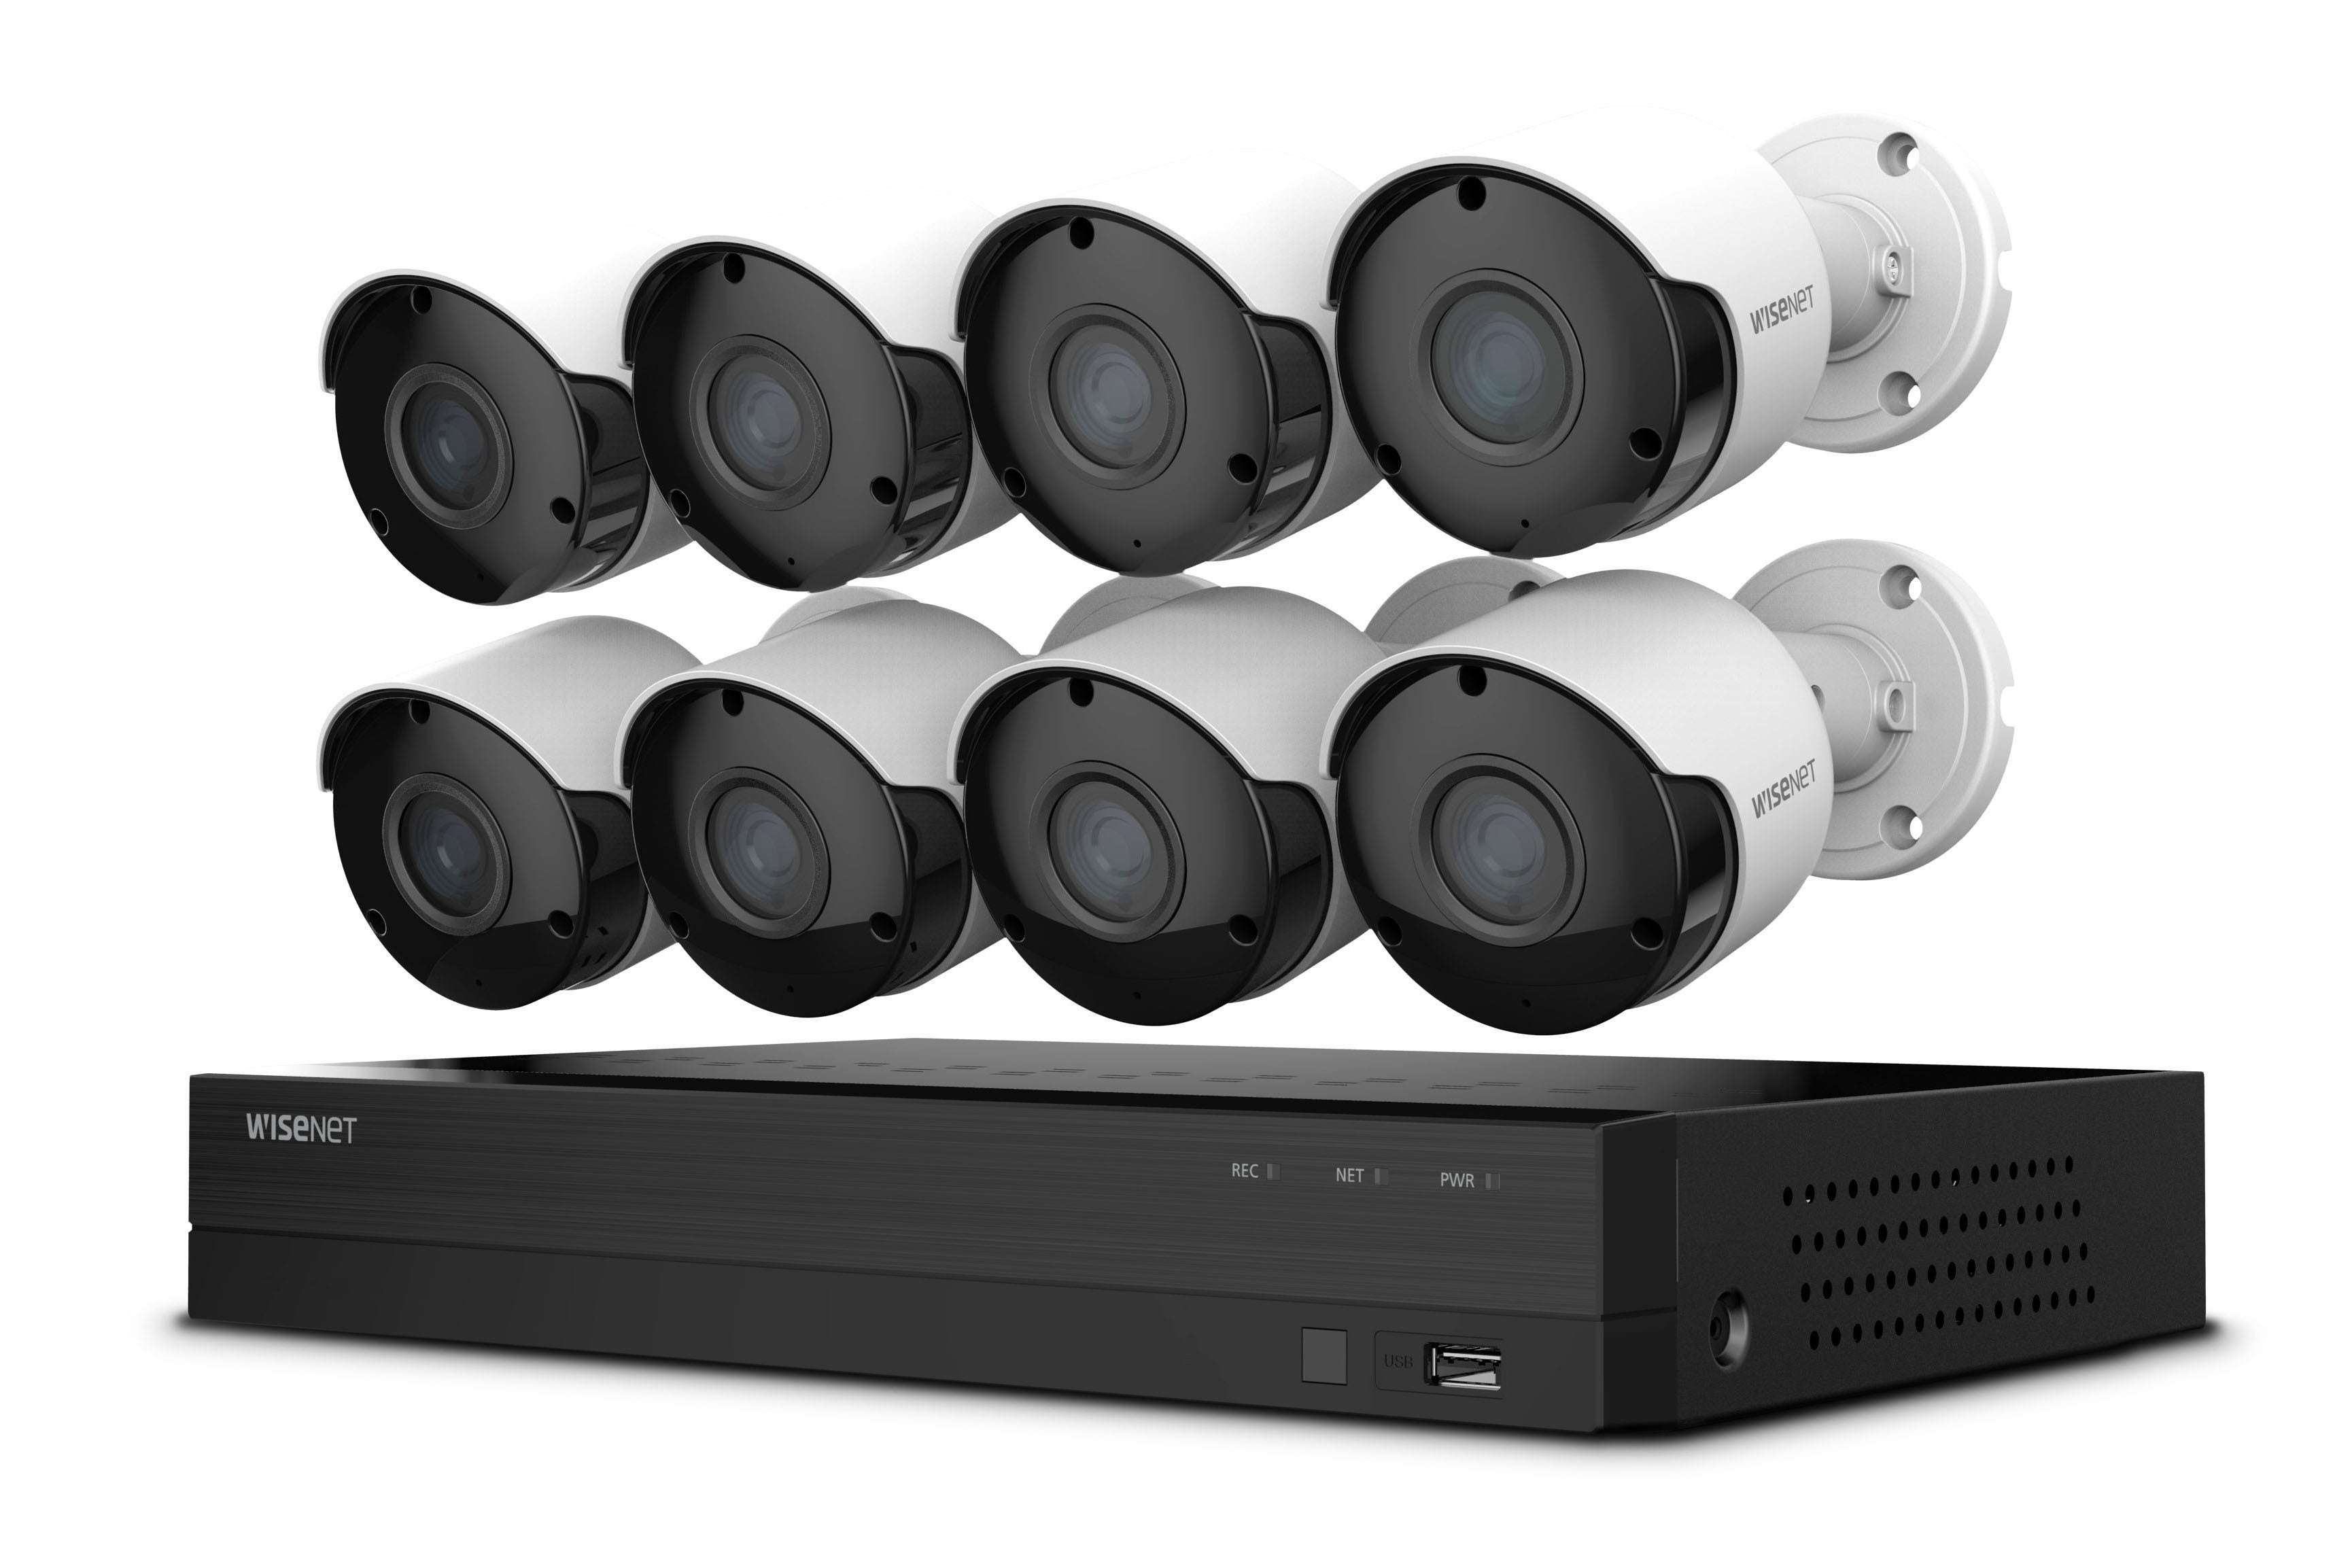 Wisenet 8 Channel 4 Camera 5mp Dvr Kit Review Wired